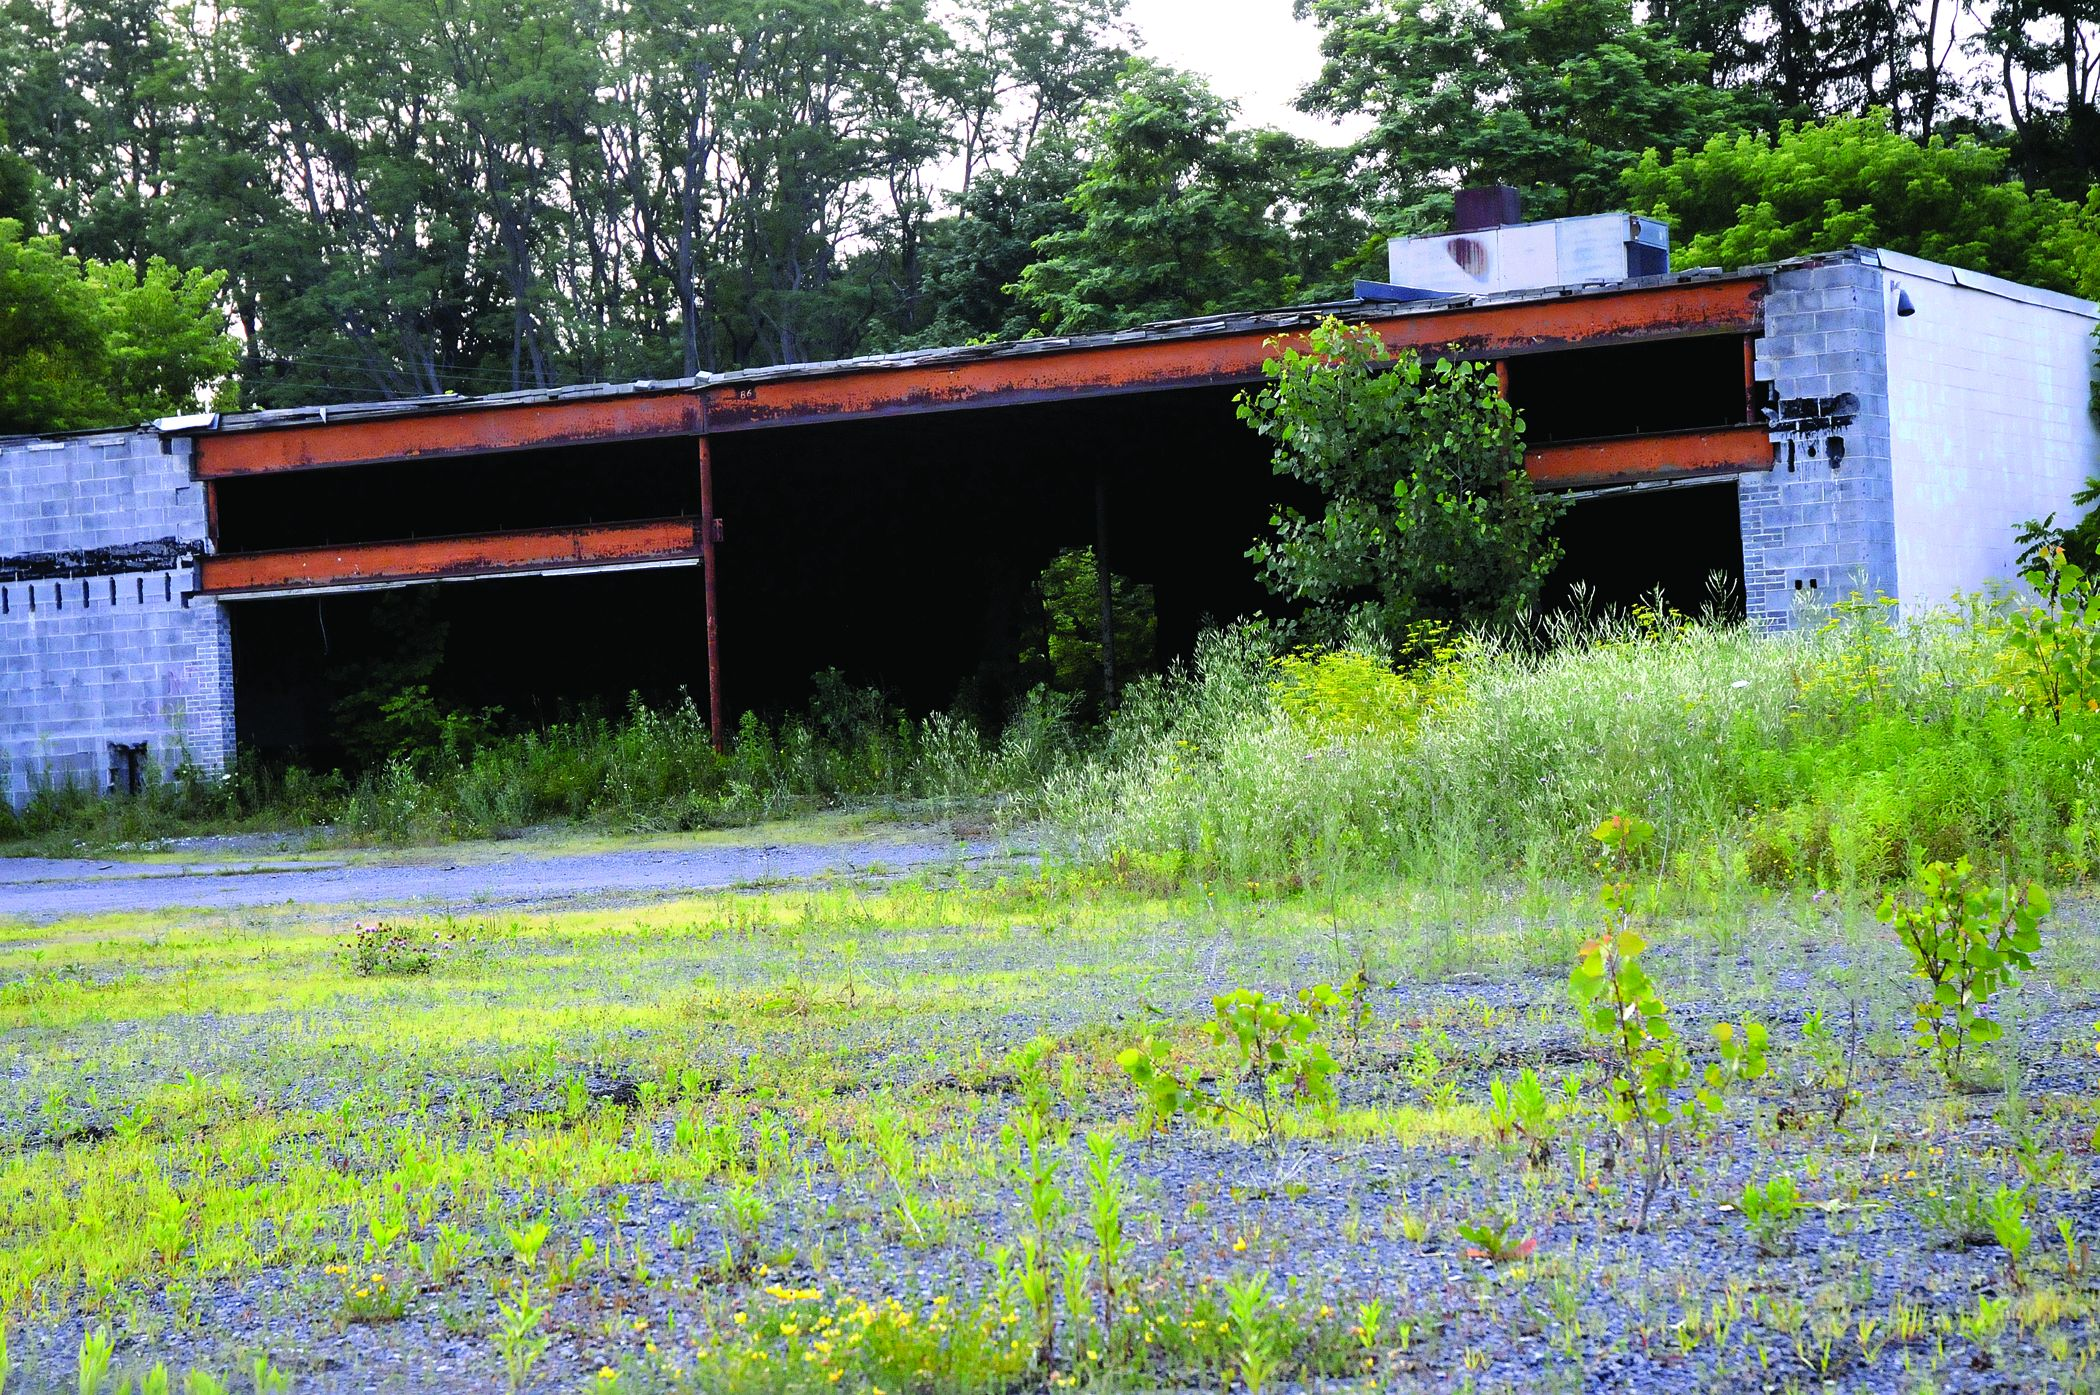 Schoharie asks SEEC for help with Great American lot